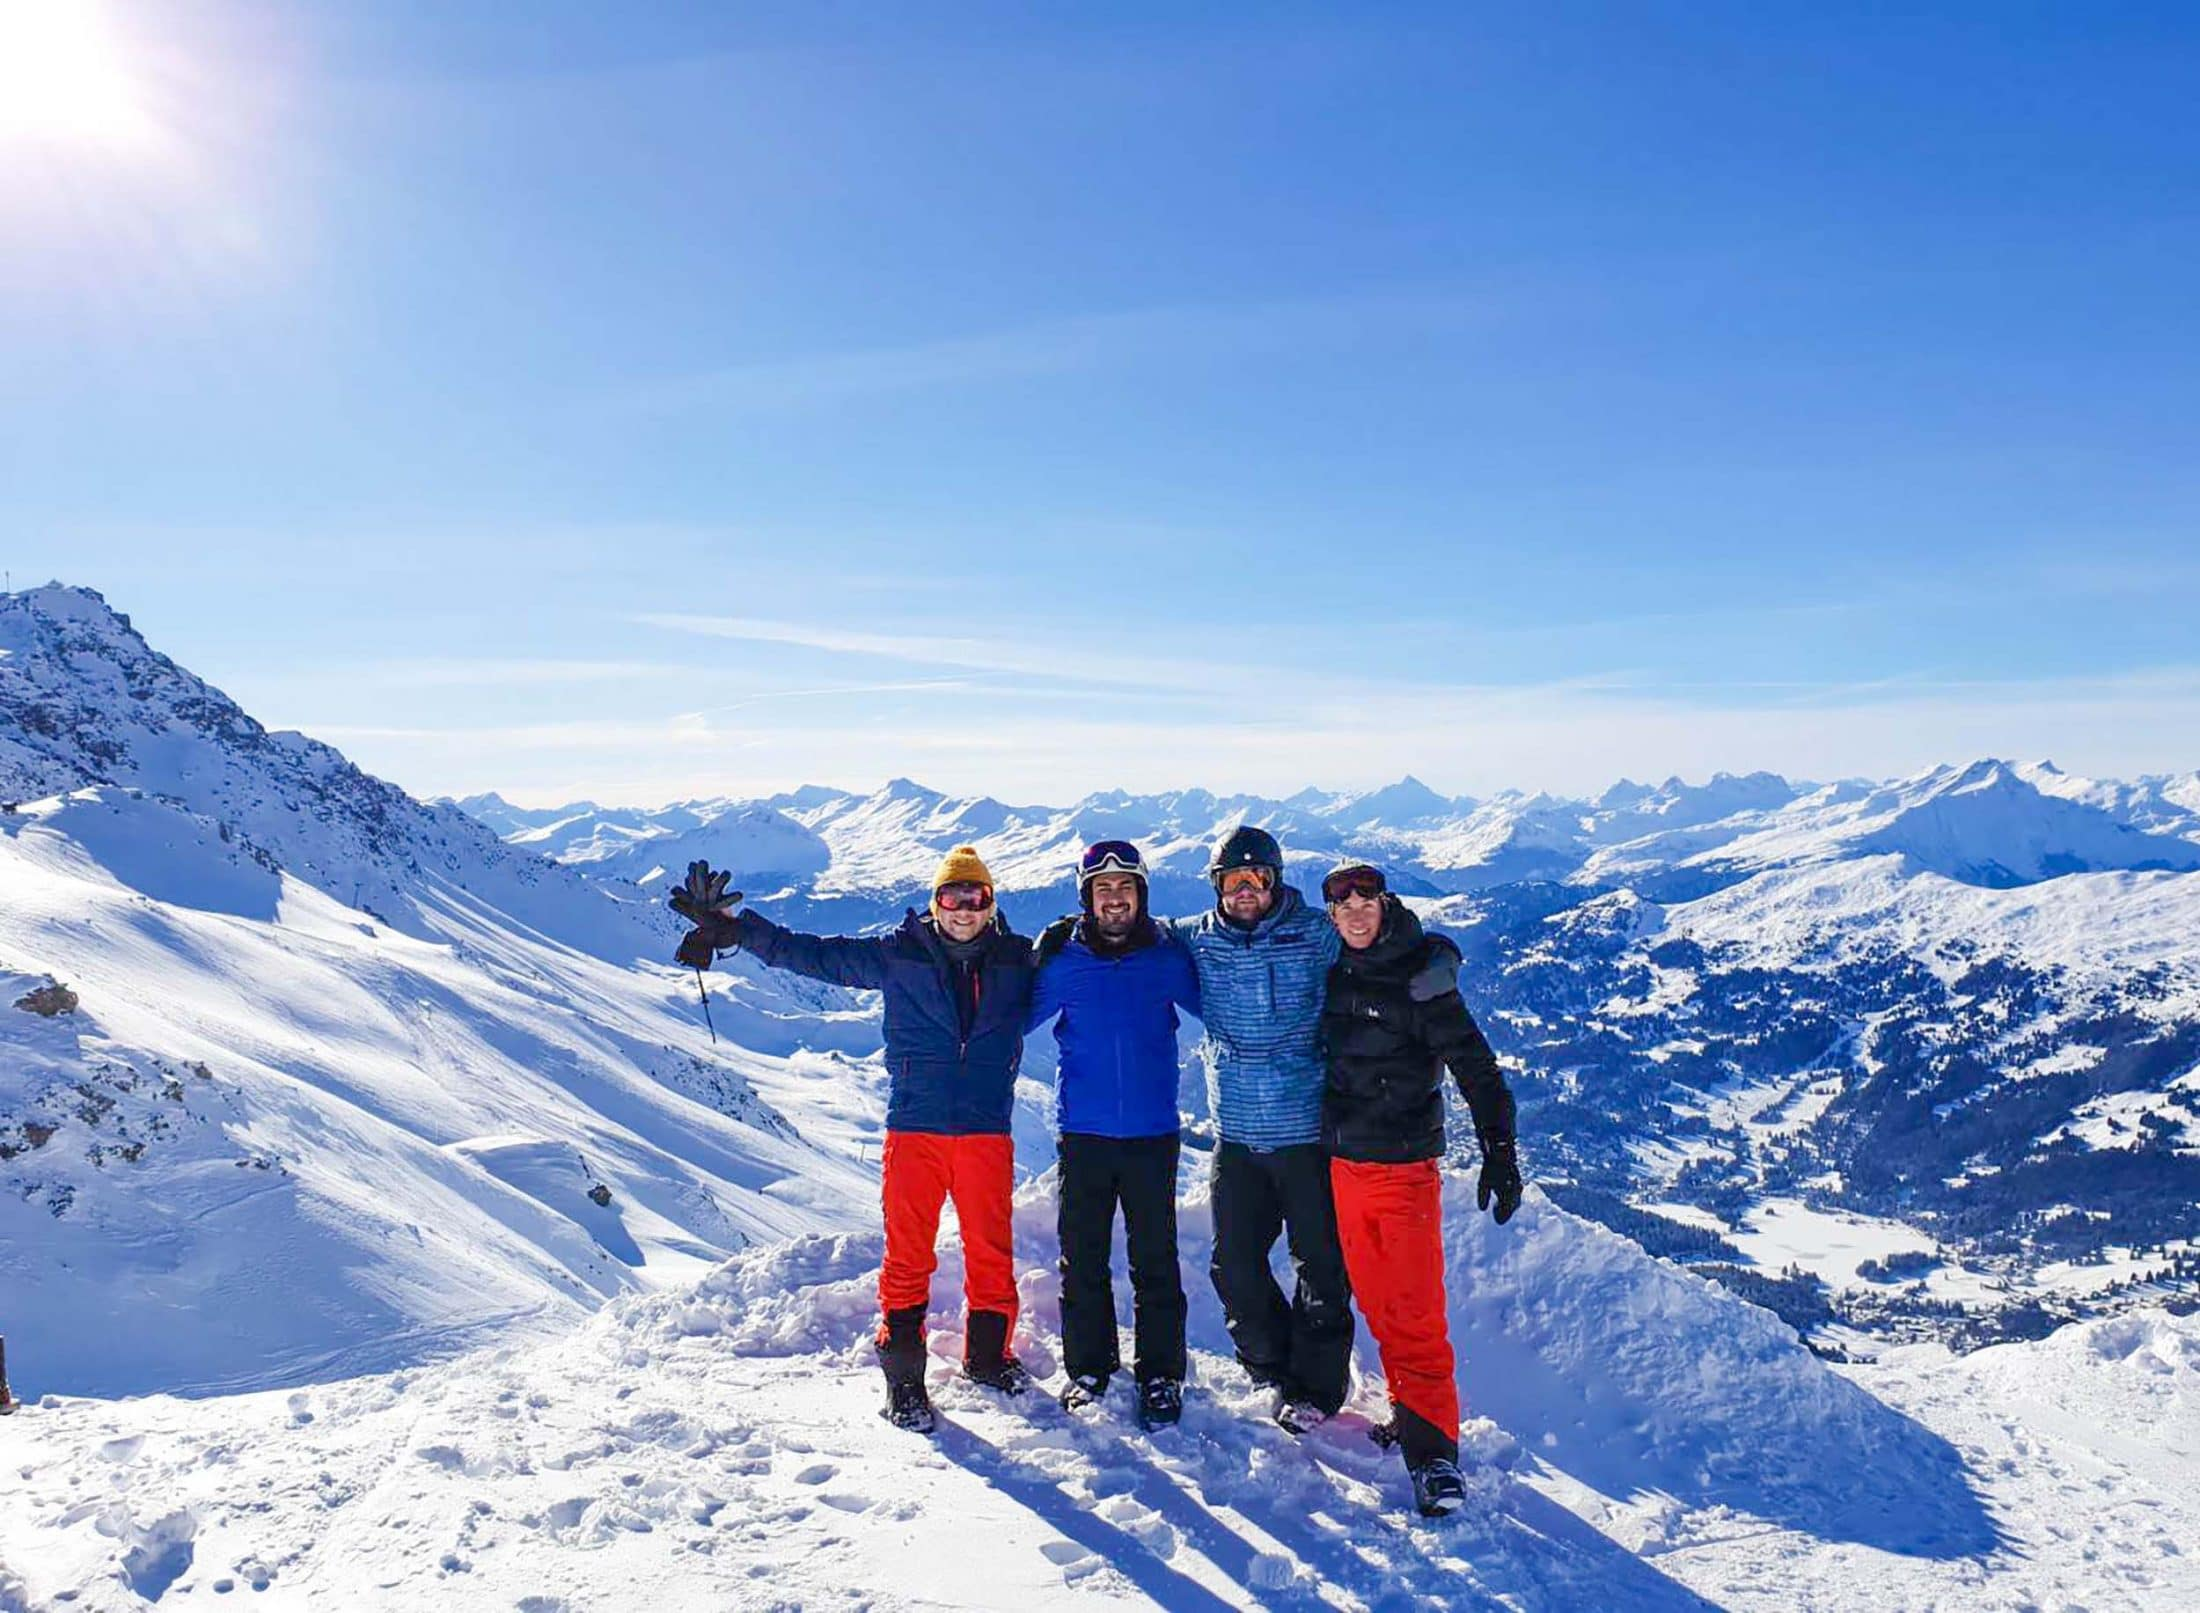 Spend the ski weekend with new and old friends from around the world